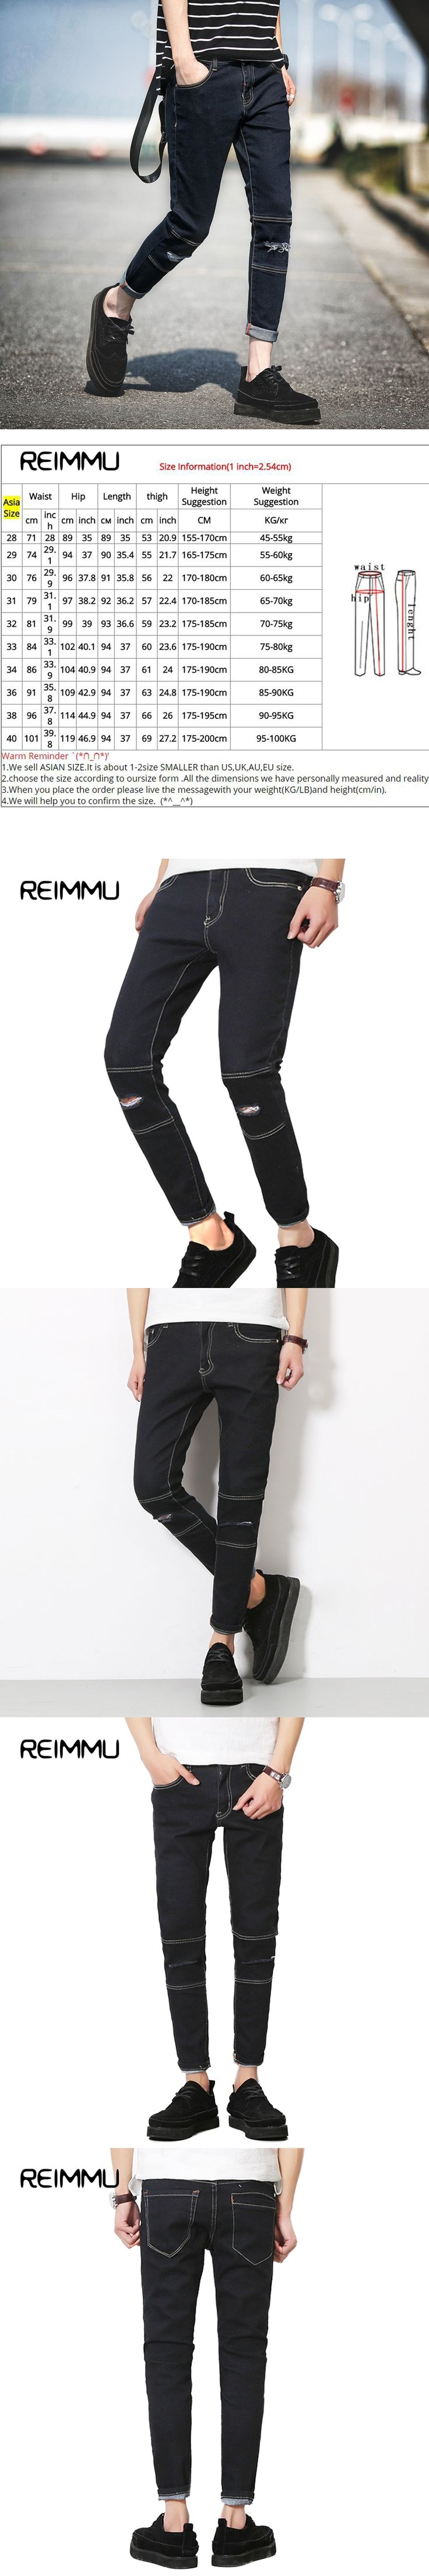 Reimmu Black Jeans Men Pants Hot Sale Slim Fit Casual Men Ripped Jeans New fashion Brand-Clothing Plus Size Trousers Male Jeans